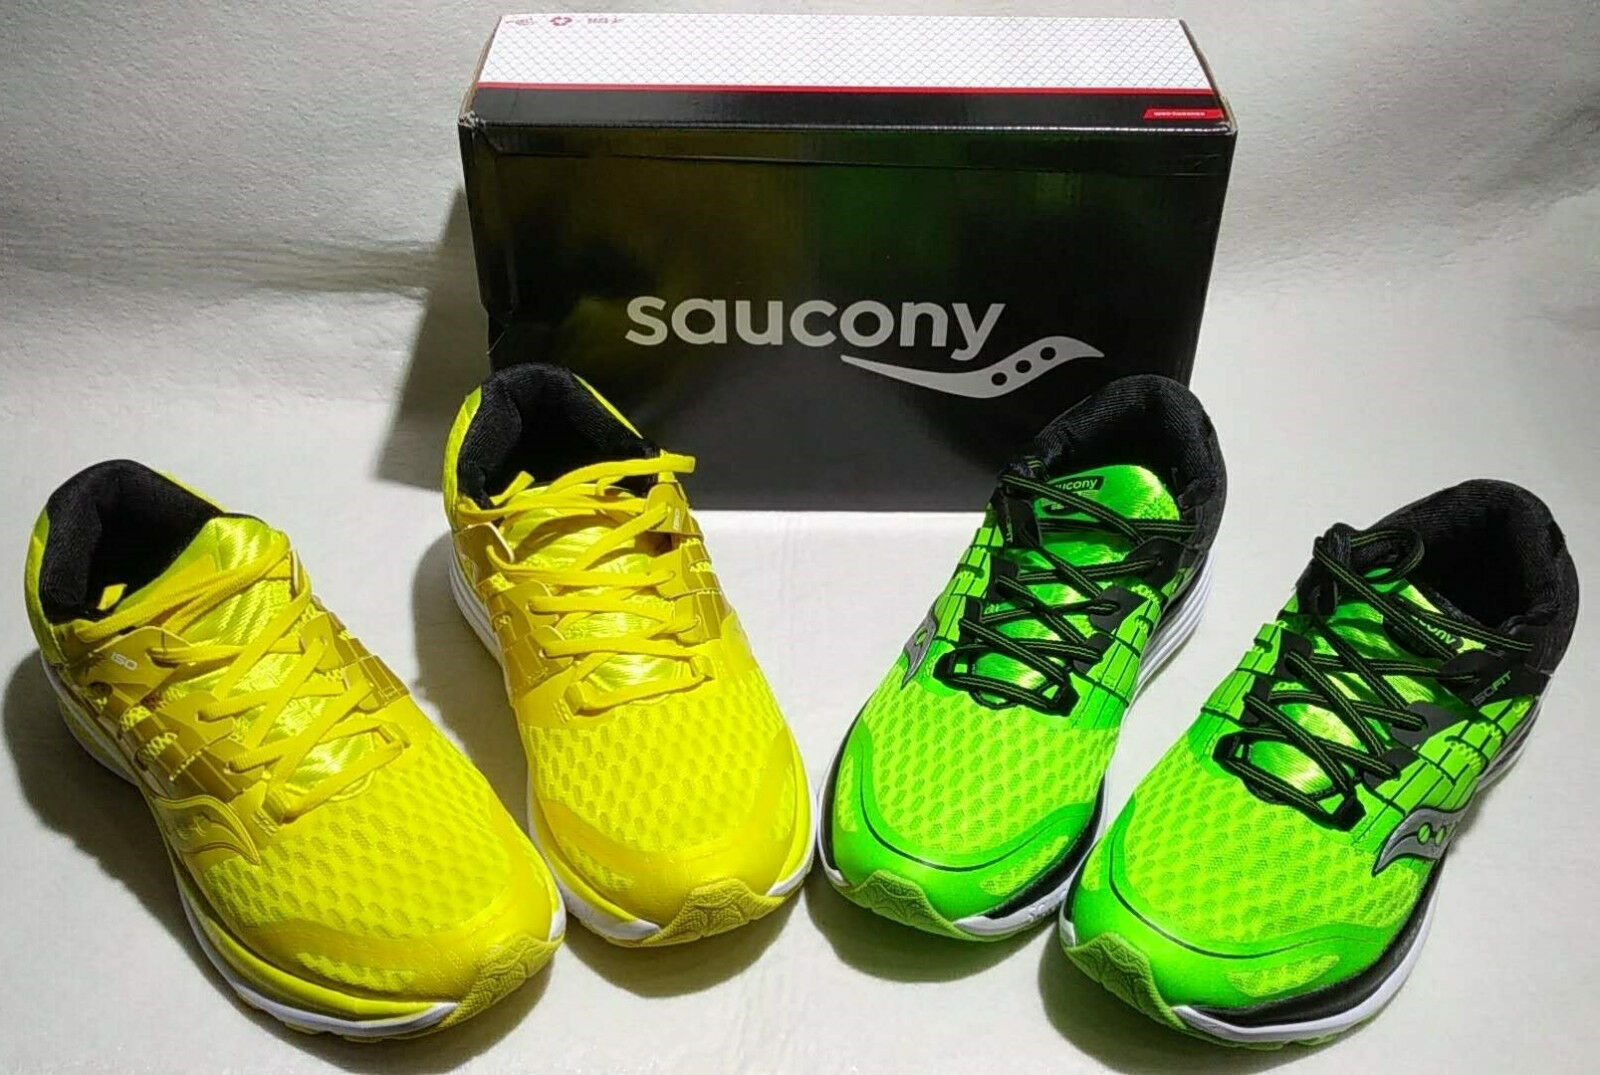 Saucony Everun 150 Series Triumph Men's Athletic Run Sneakers Size 9 9.5 10 10.5